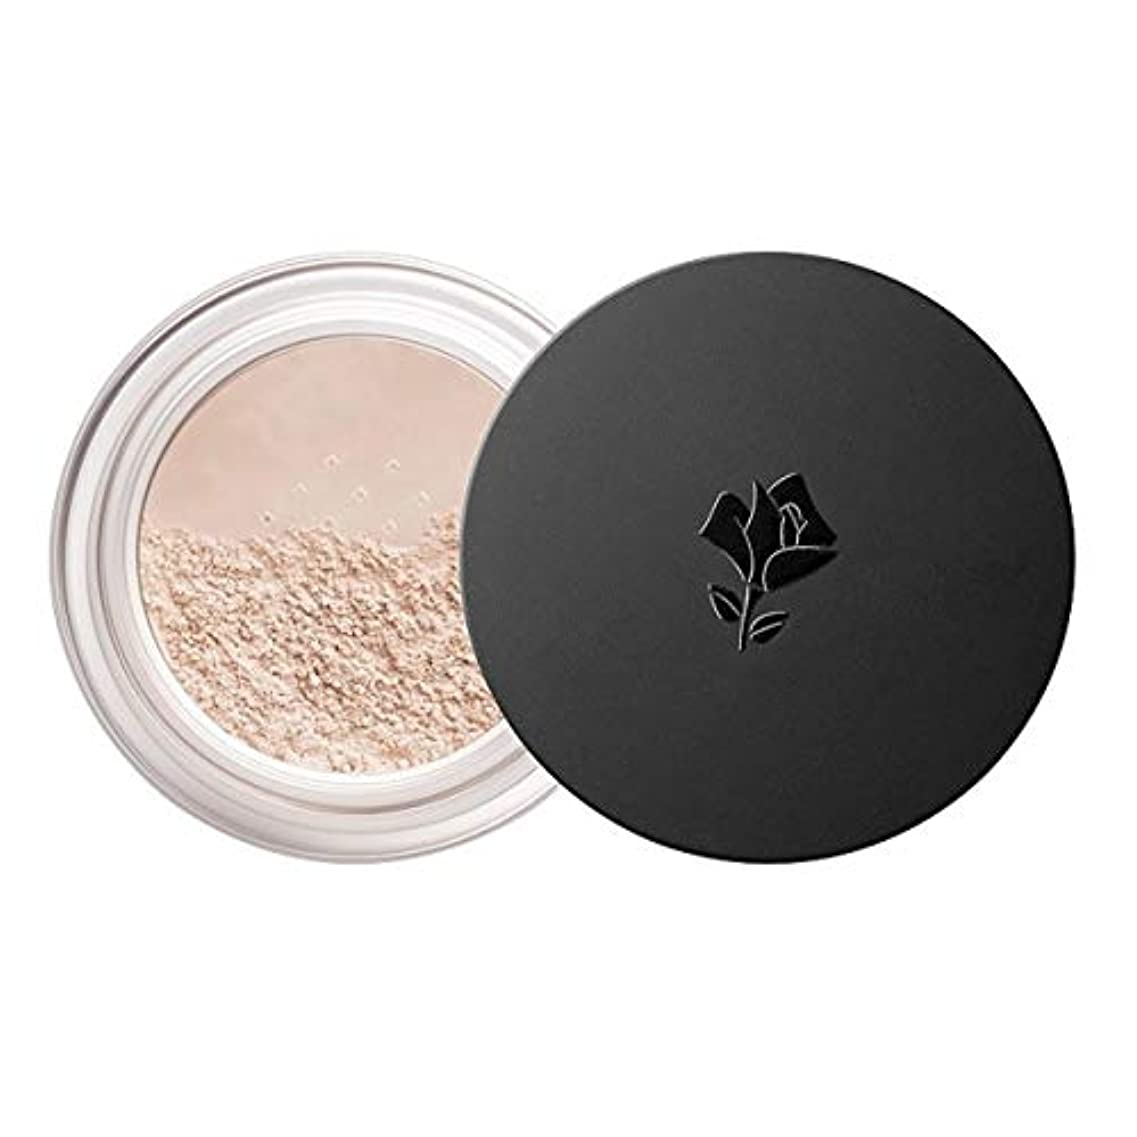 いっぱいボイコットあえぎランコム Long Time No Shine Loose Setting & Mattifying Powder - # Translucent 15g/0.52oz並行輸入品